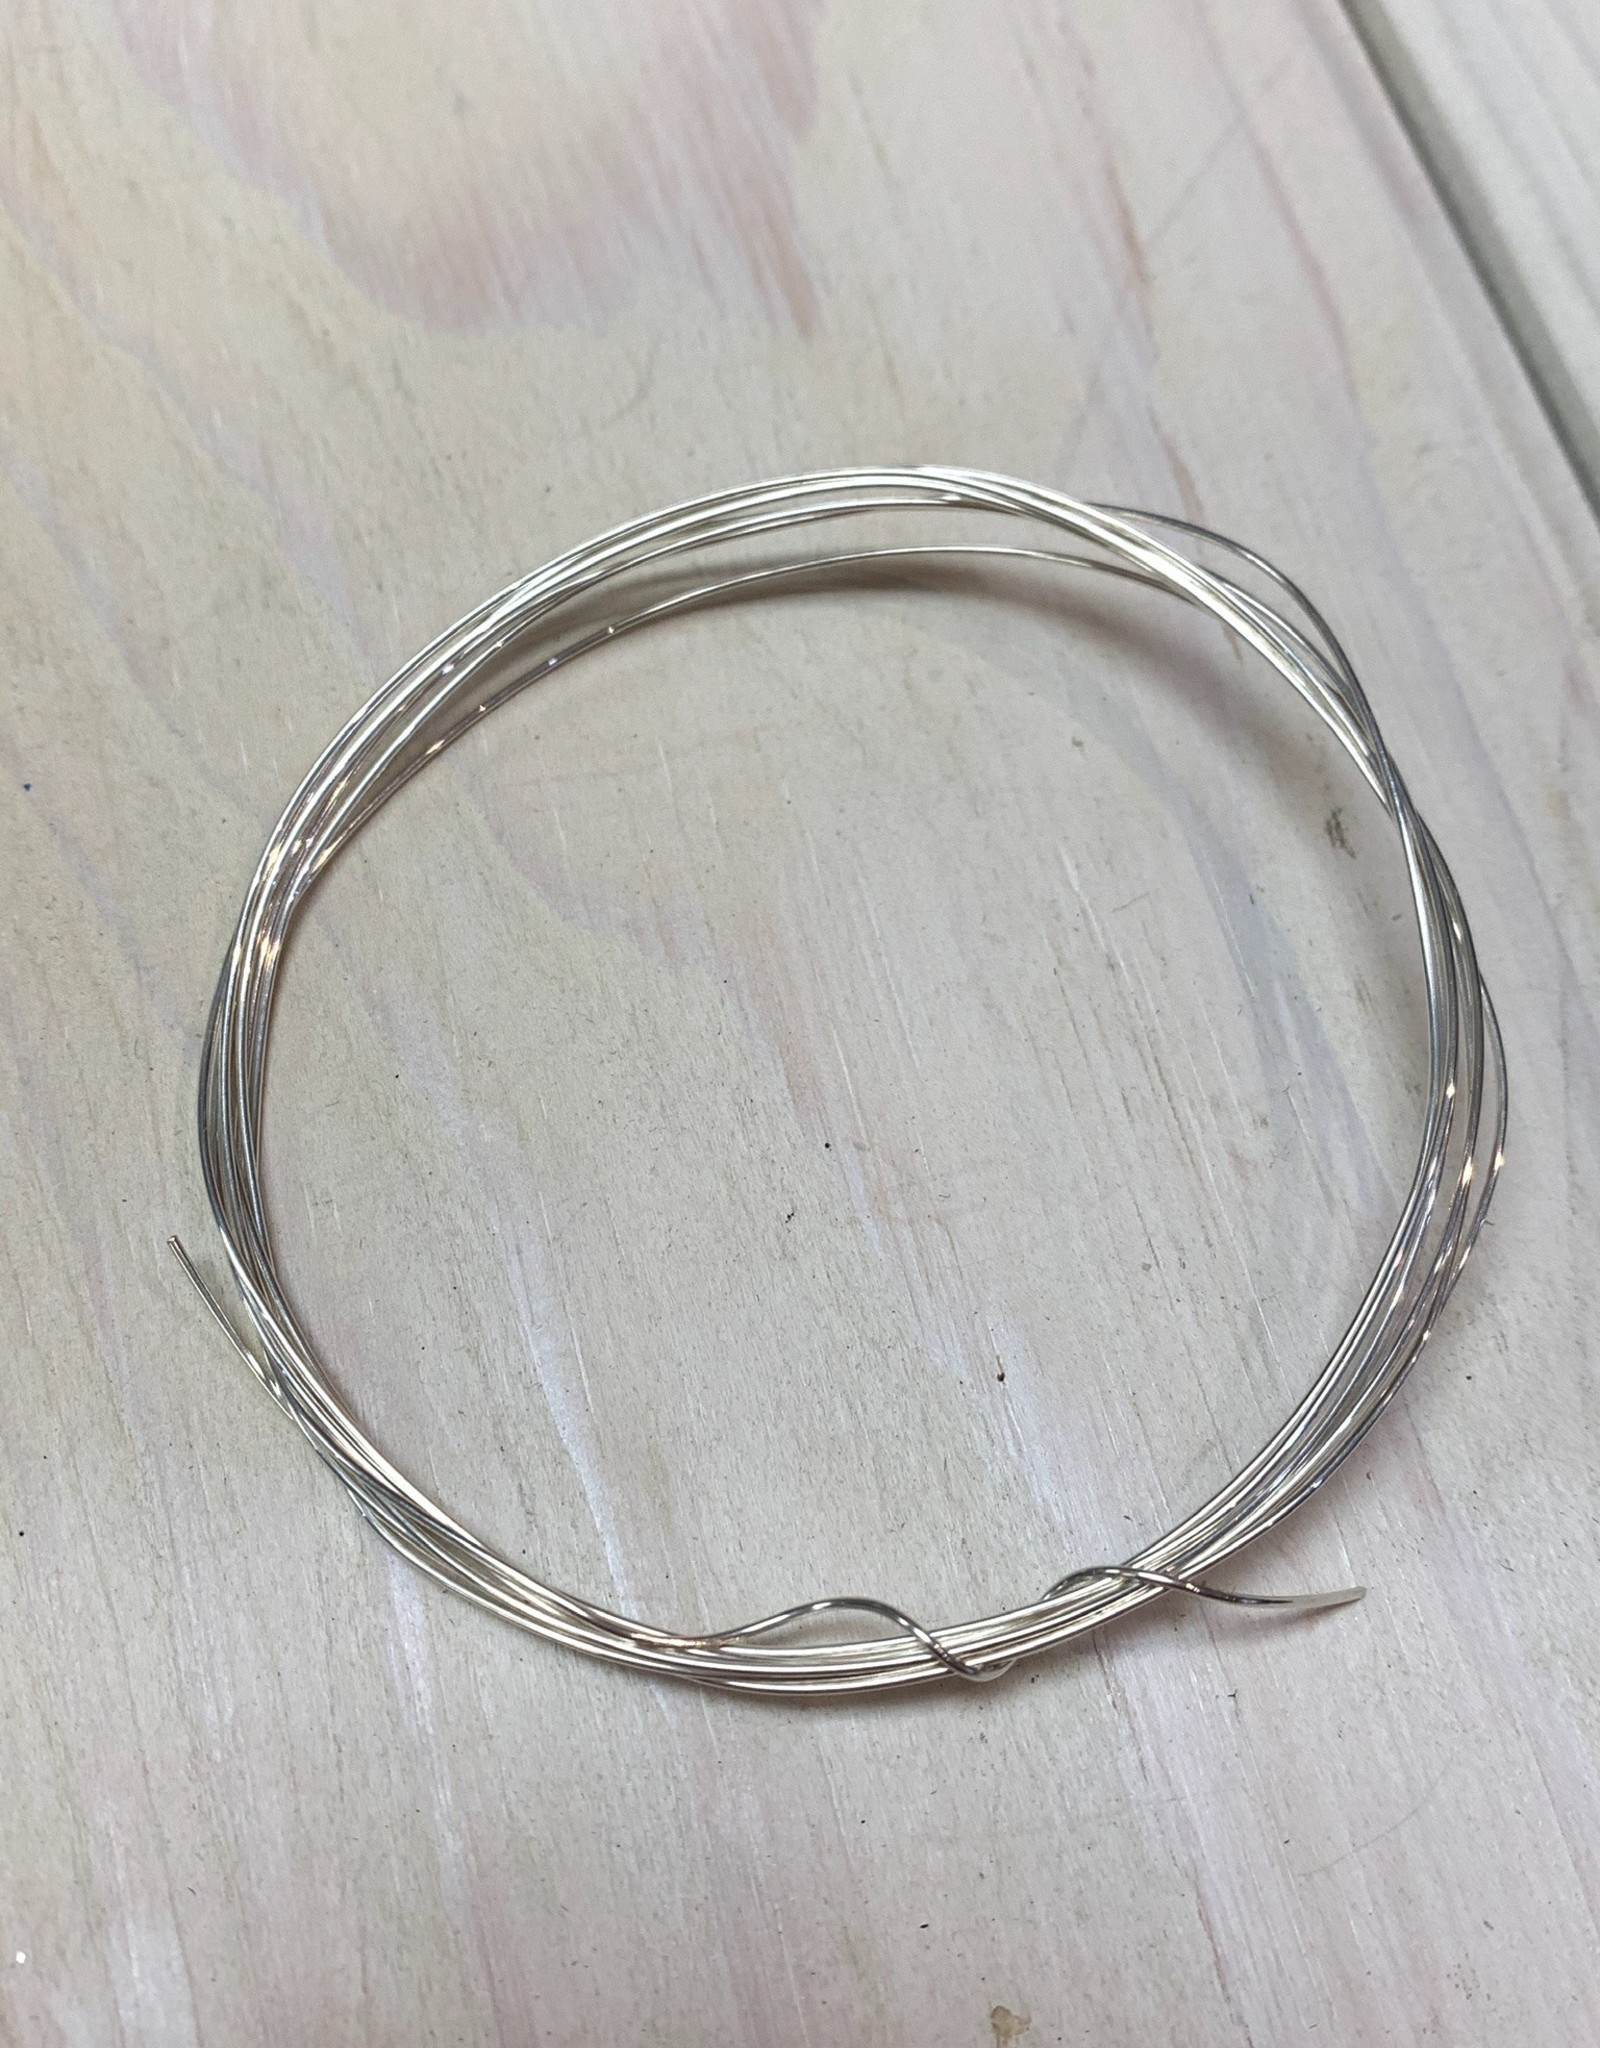 22ga Round Wire Sterling Silver 5ft